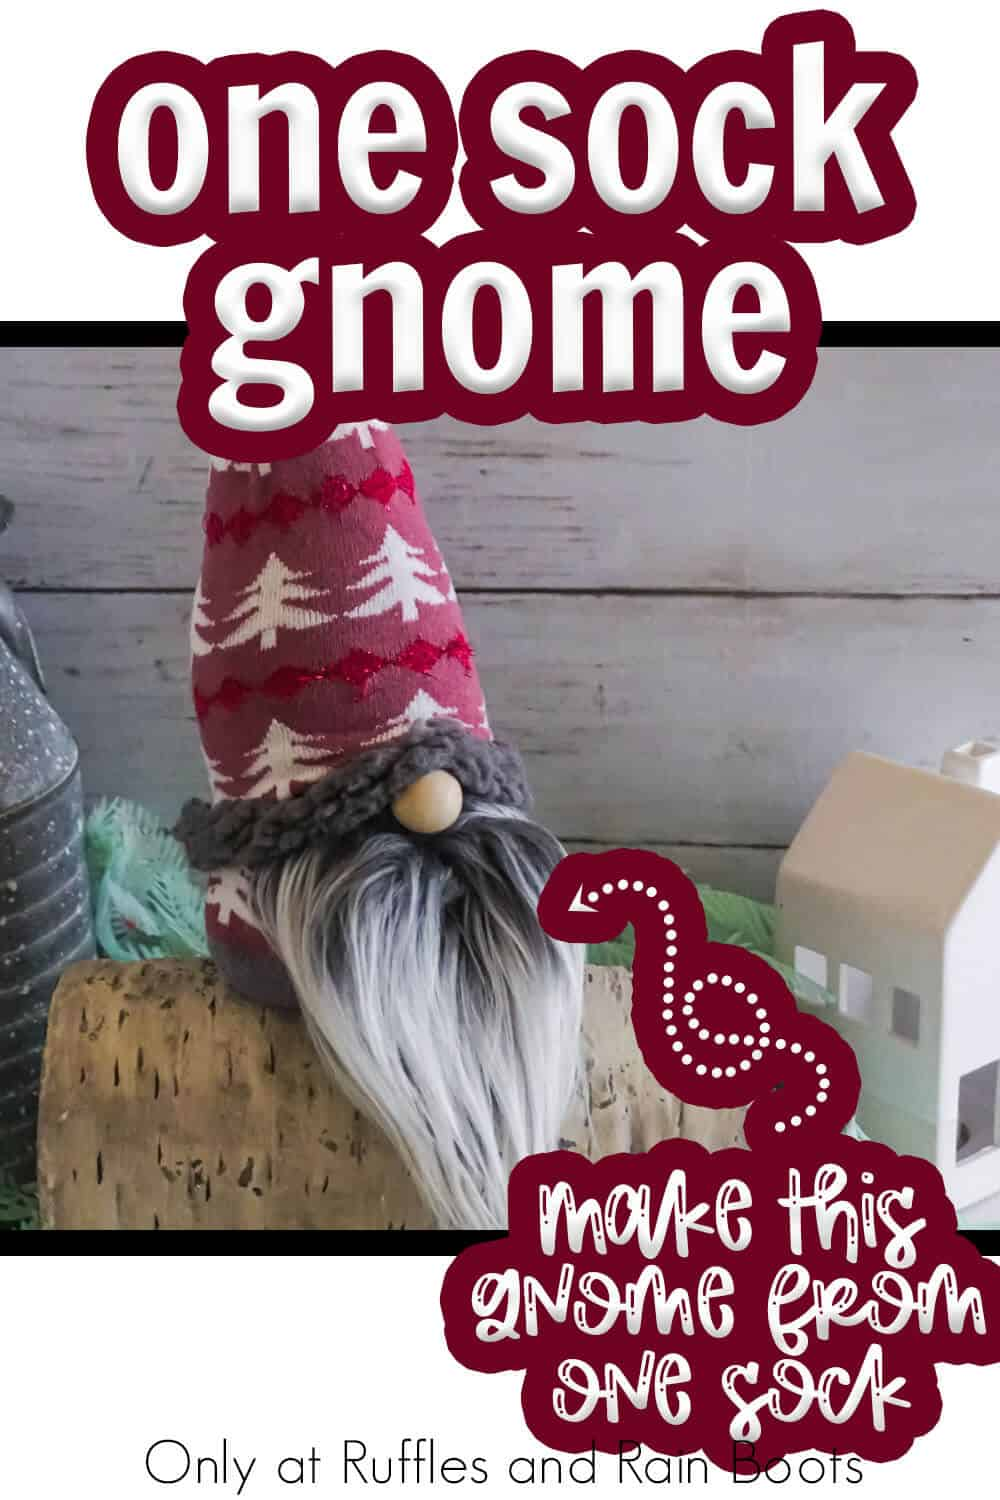 diy gnome you can make fast with text which reads one sock gnome make this gnome from one sock